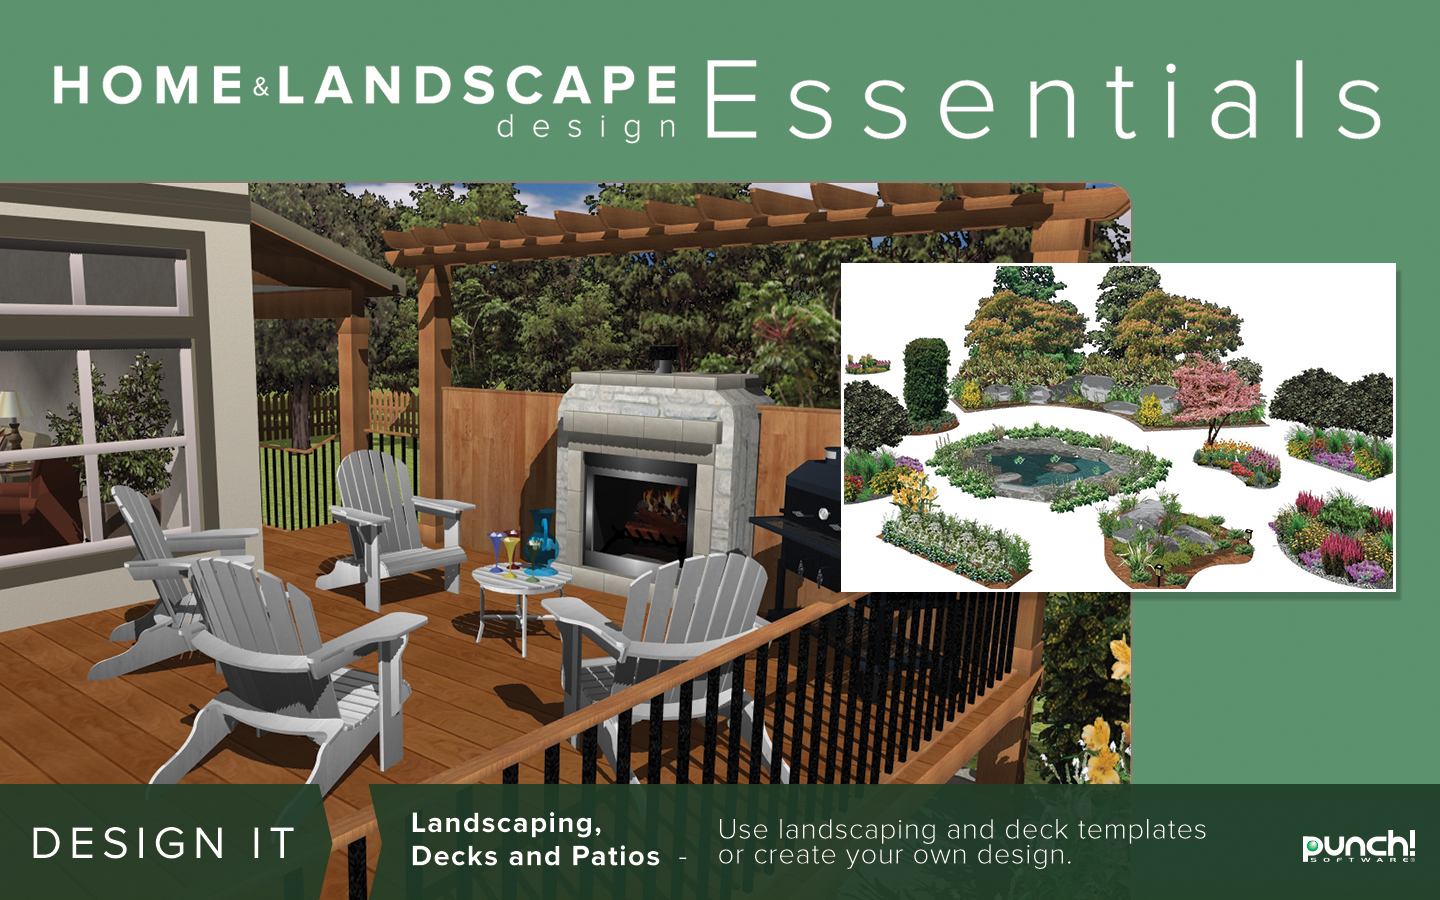 Punch home landscape design essentials v19 for windows for Punch home landscape design essentials v19